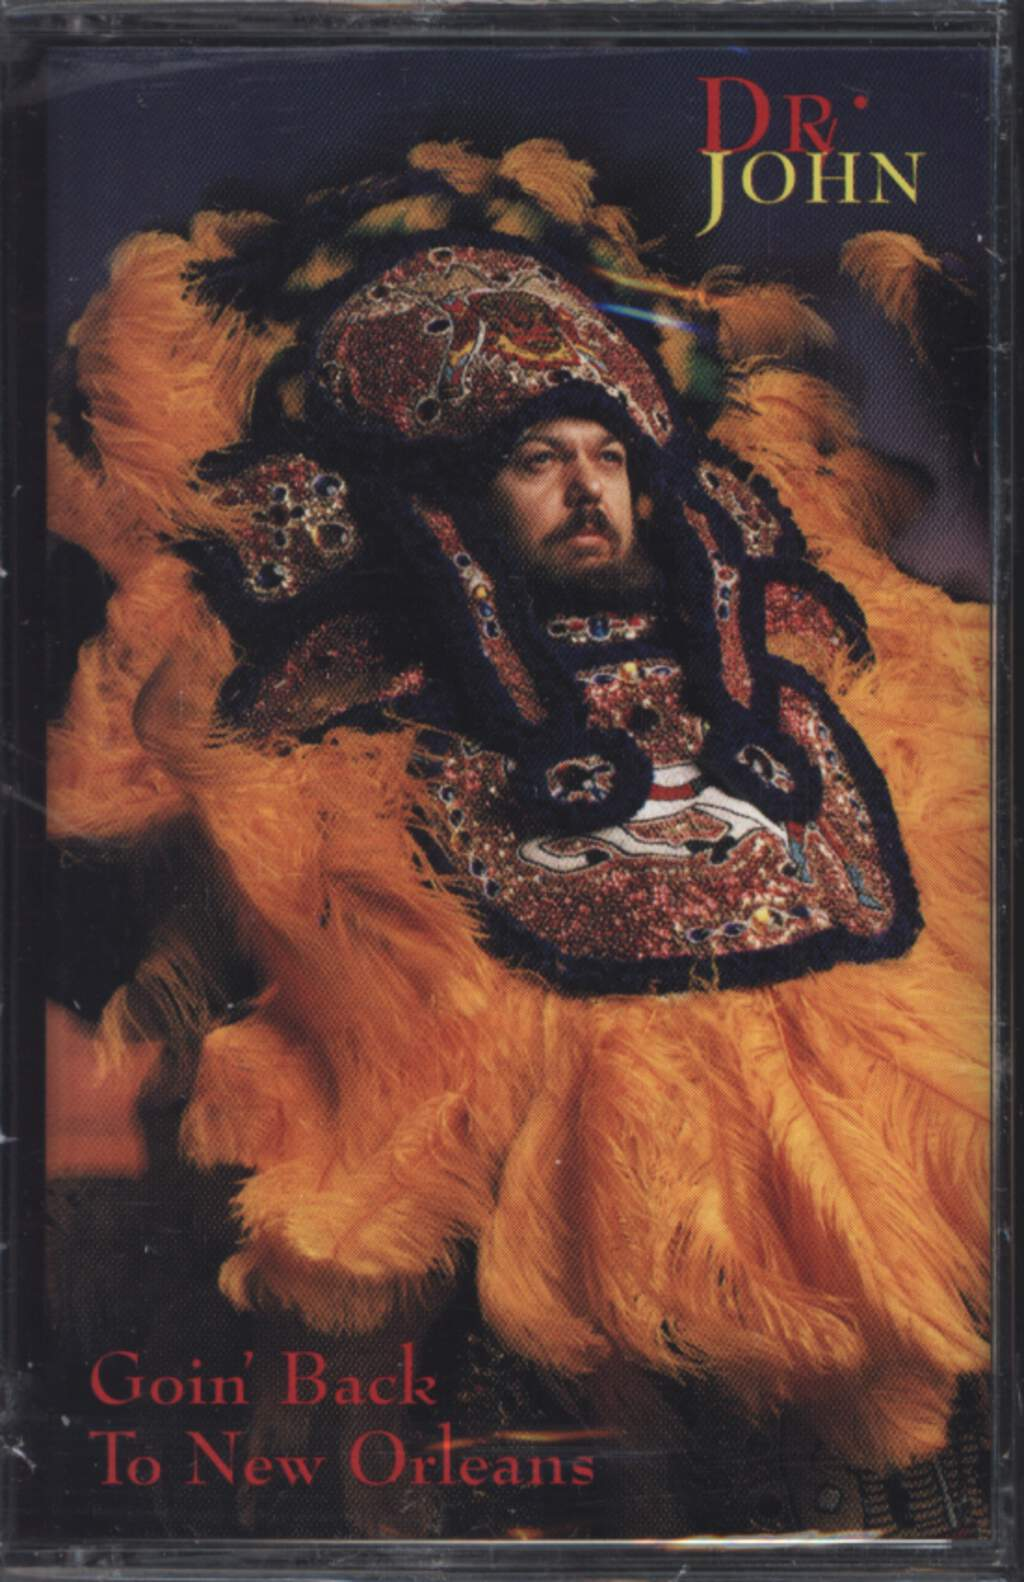 Dr. John: Goin' Back To New Orleans, Compact Cassette